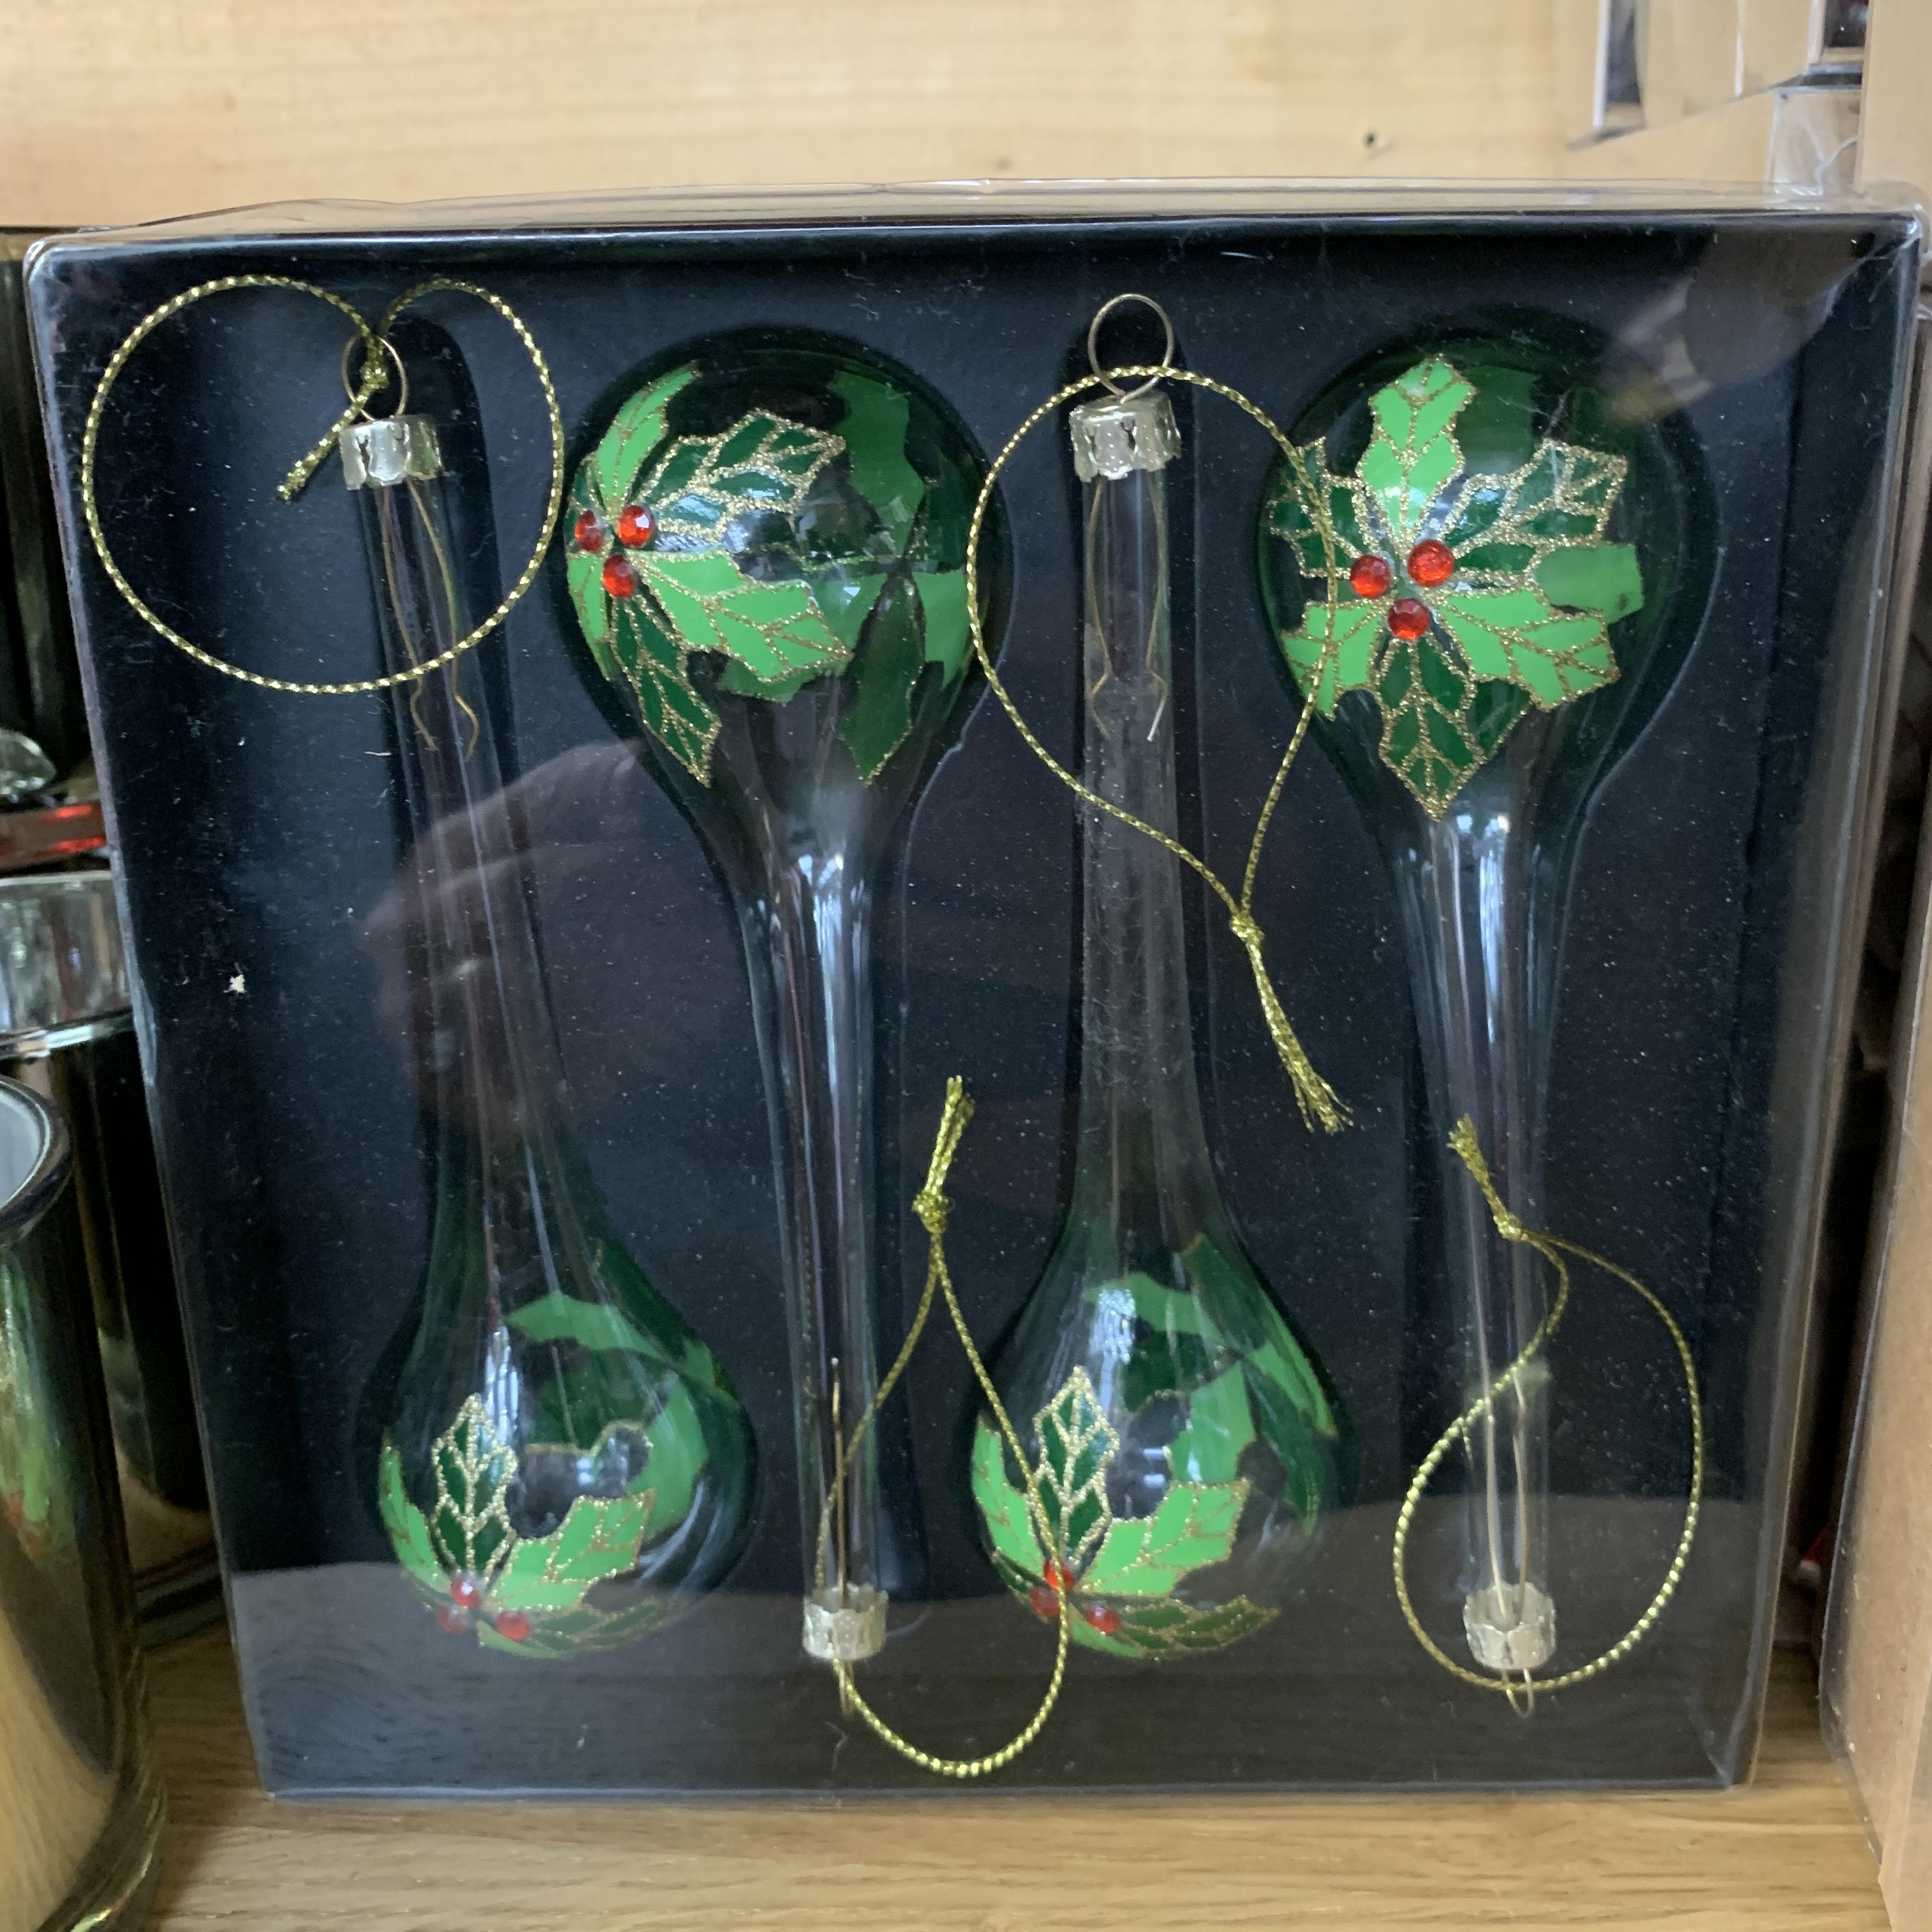 HANGING GLASS DROPLETS SET WITH HOLLY DECO